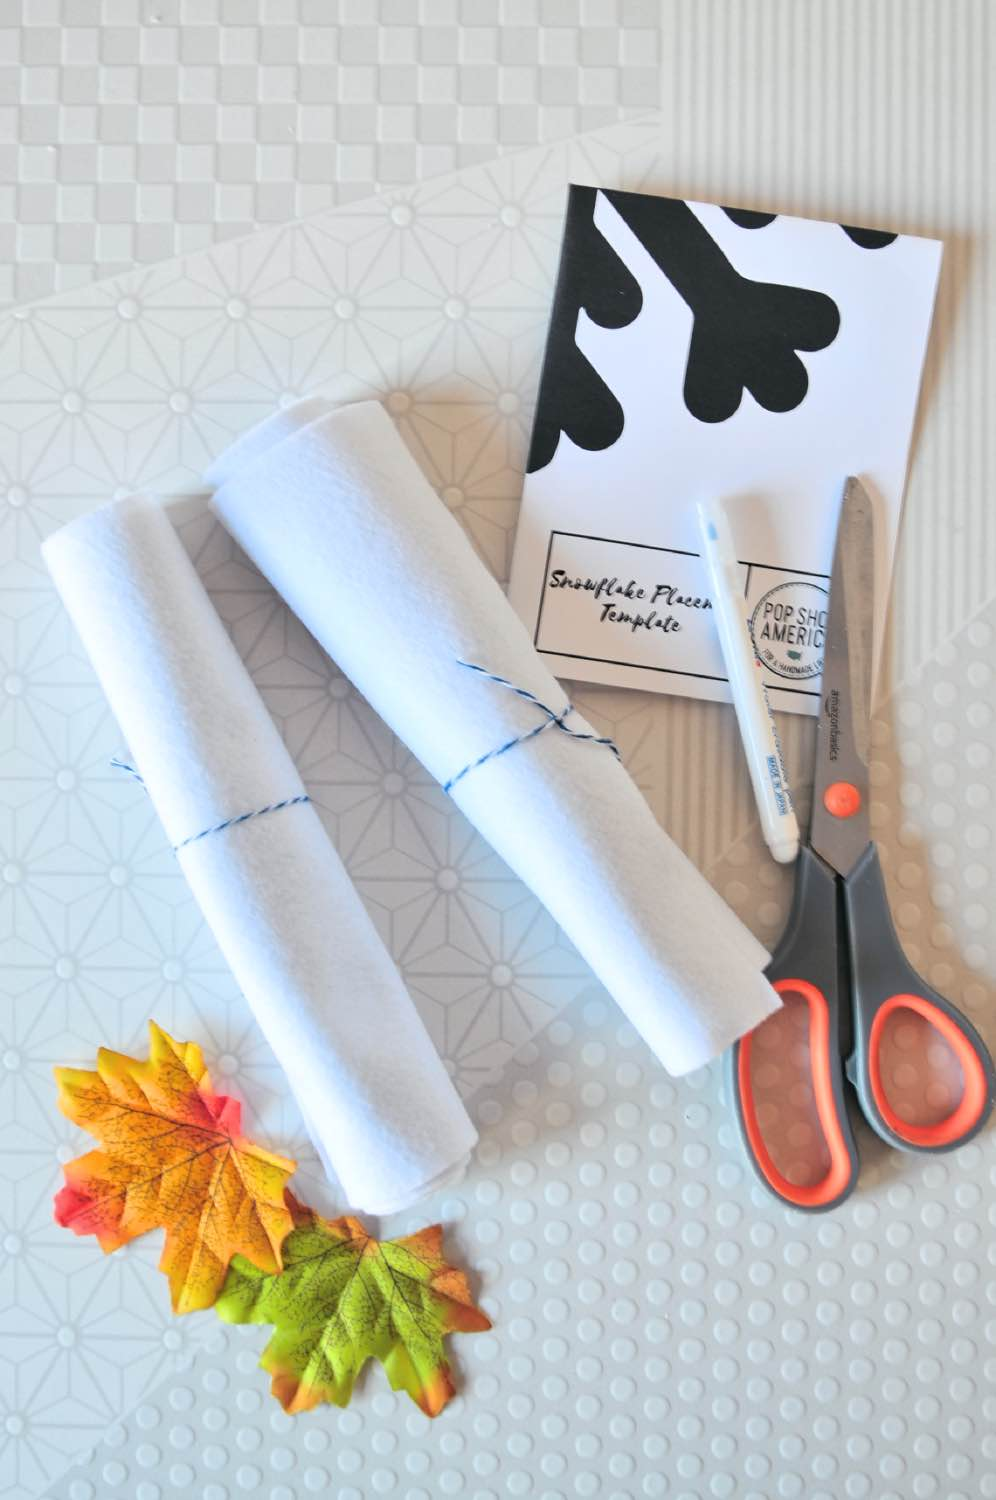 supplies to make a snowflake placemat pop shop america